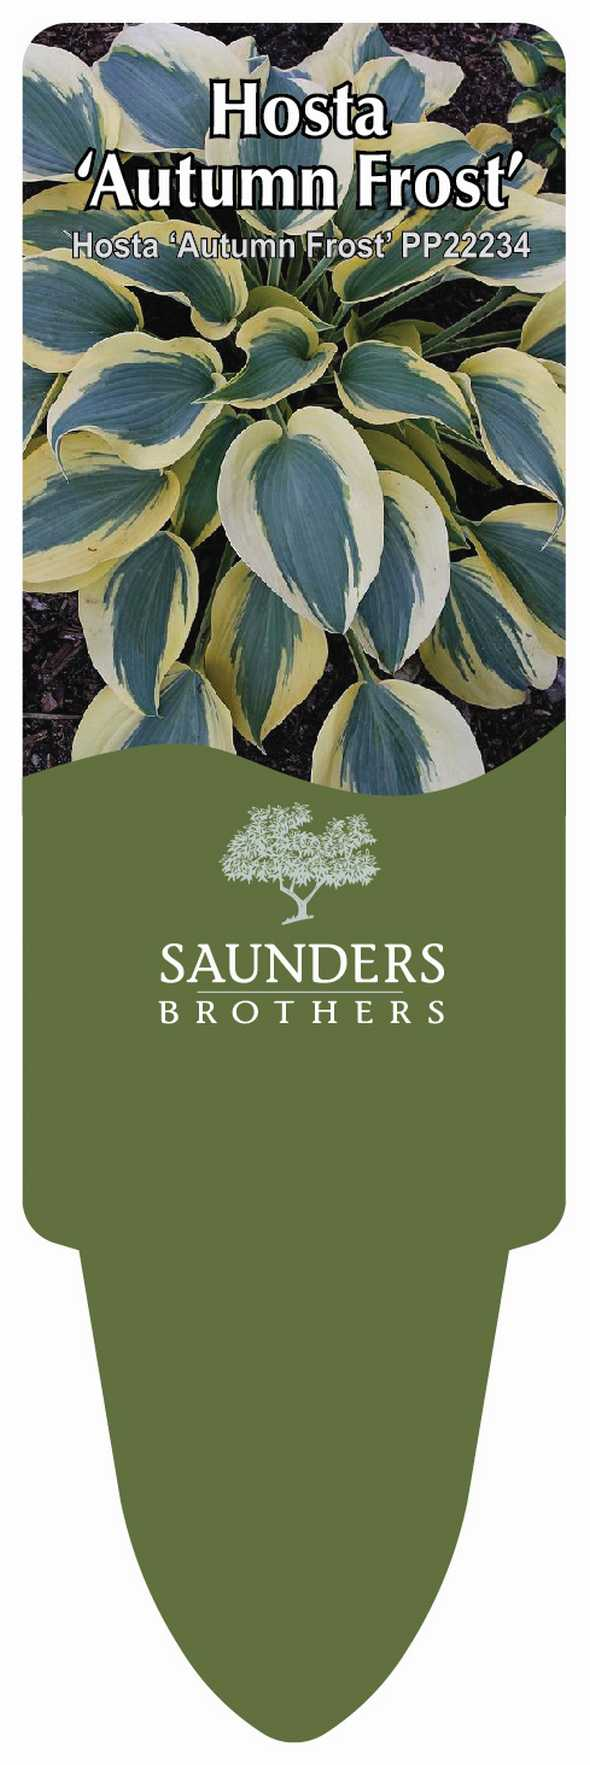 Saunders Brothers AR stake from HIP Labels